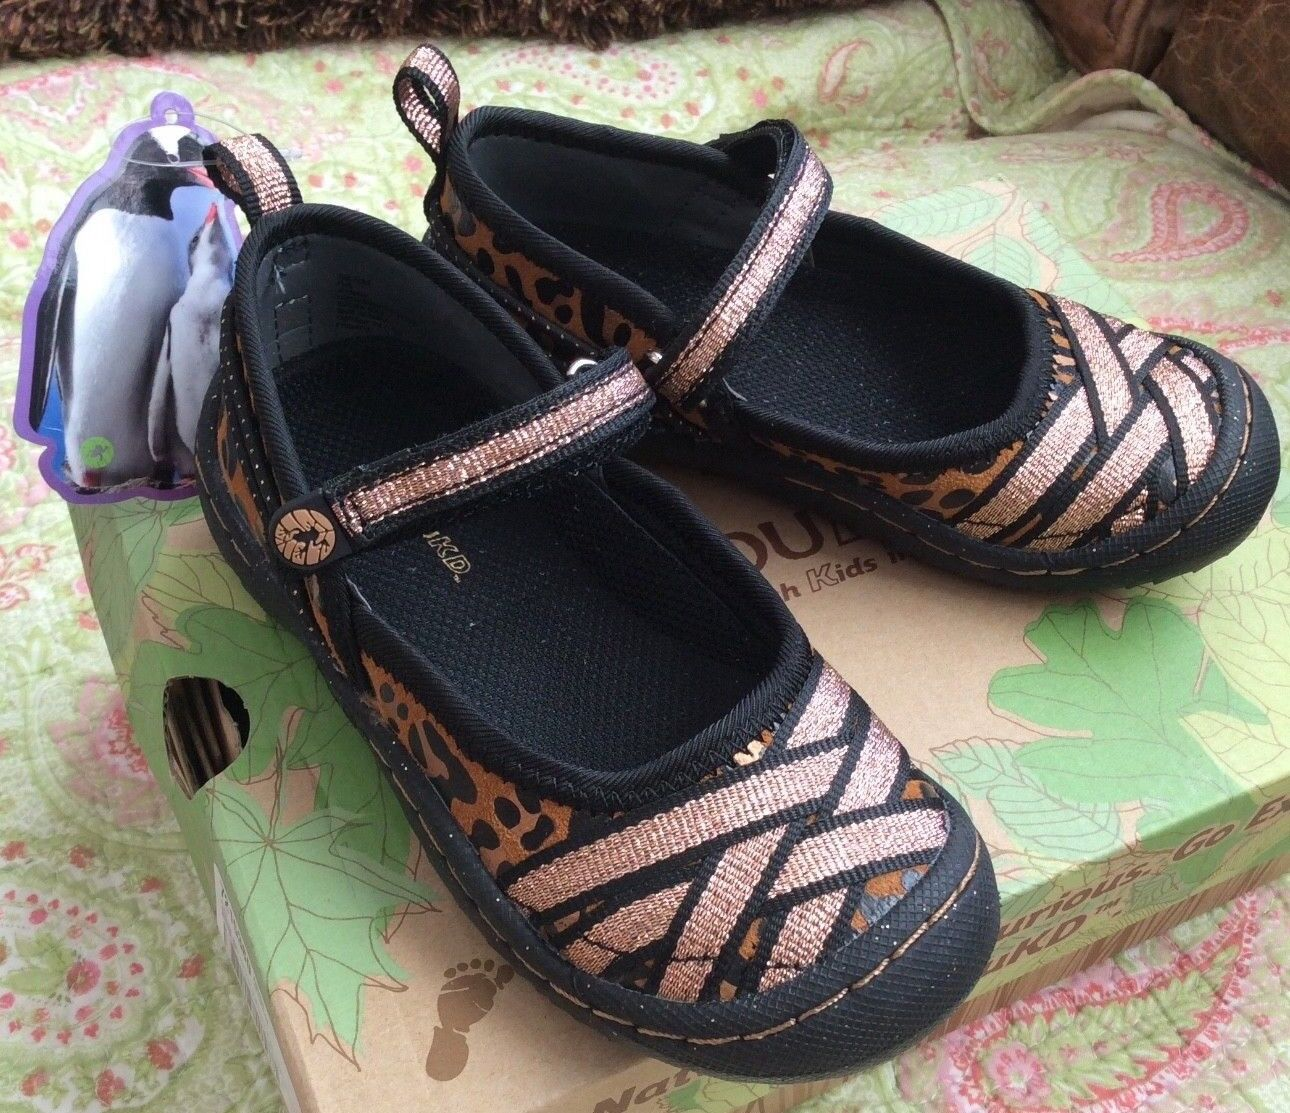 Animal Print new $55 Jambu Brown Black Gold Leather Mary Jan